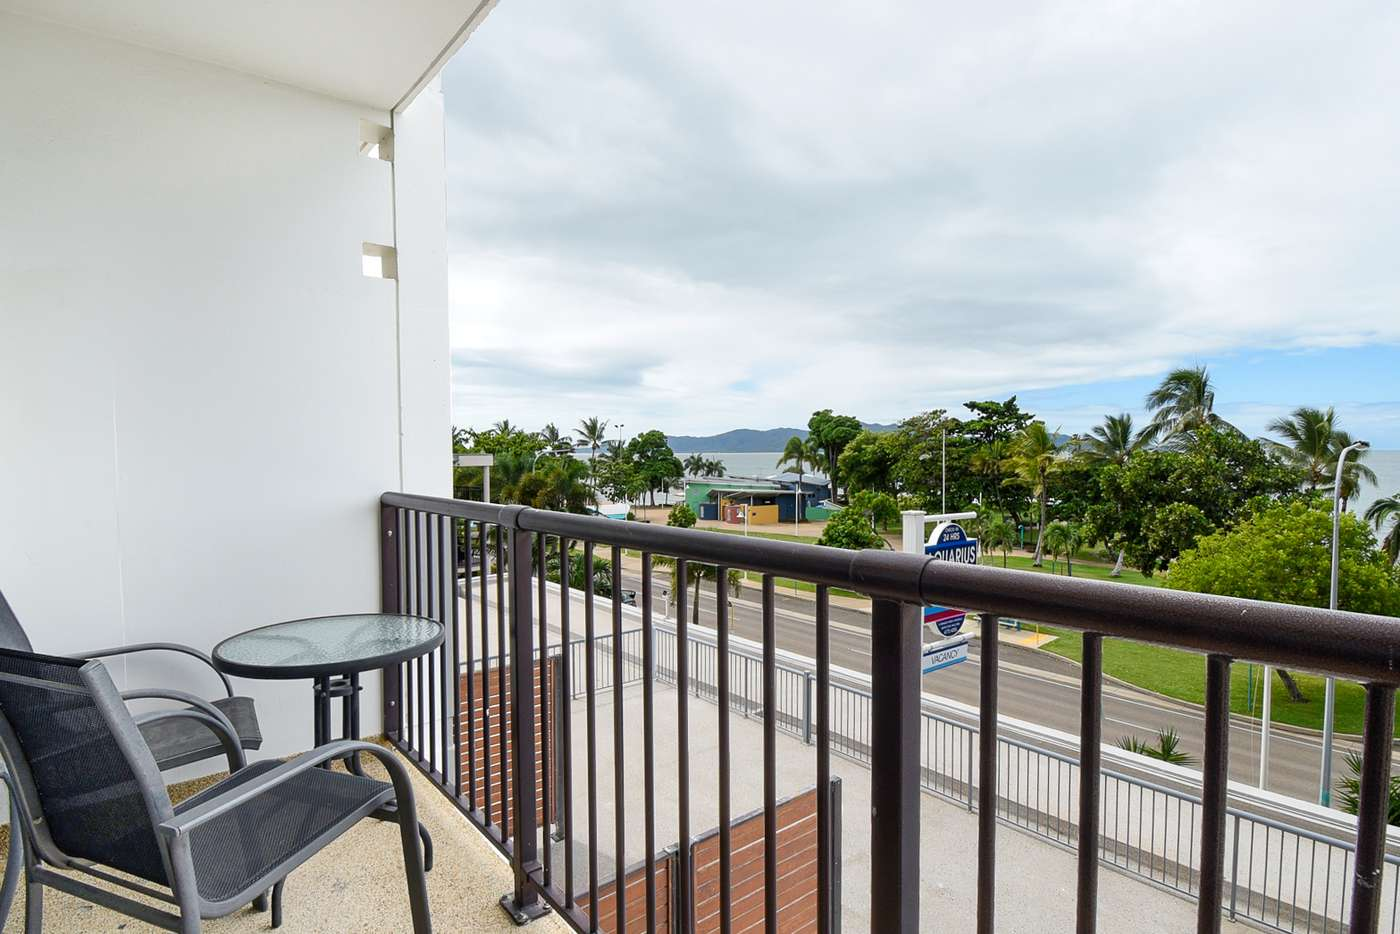 Main view of Homely apartment listing, 203/75 The Strand, North Ward QLD 4810